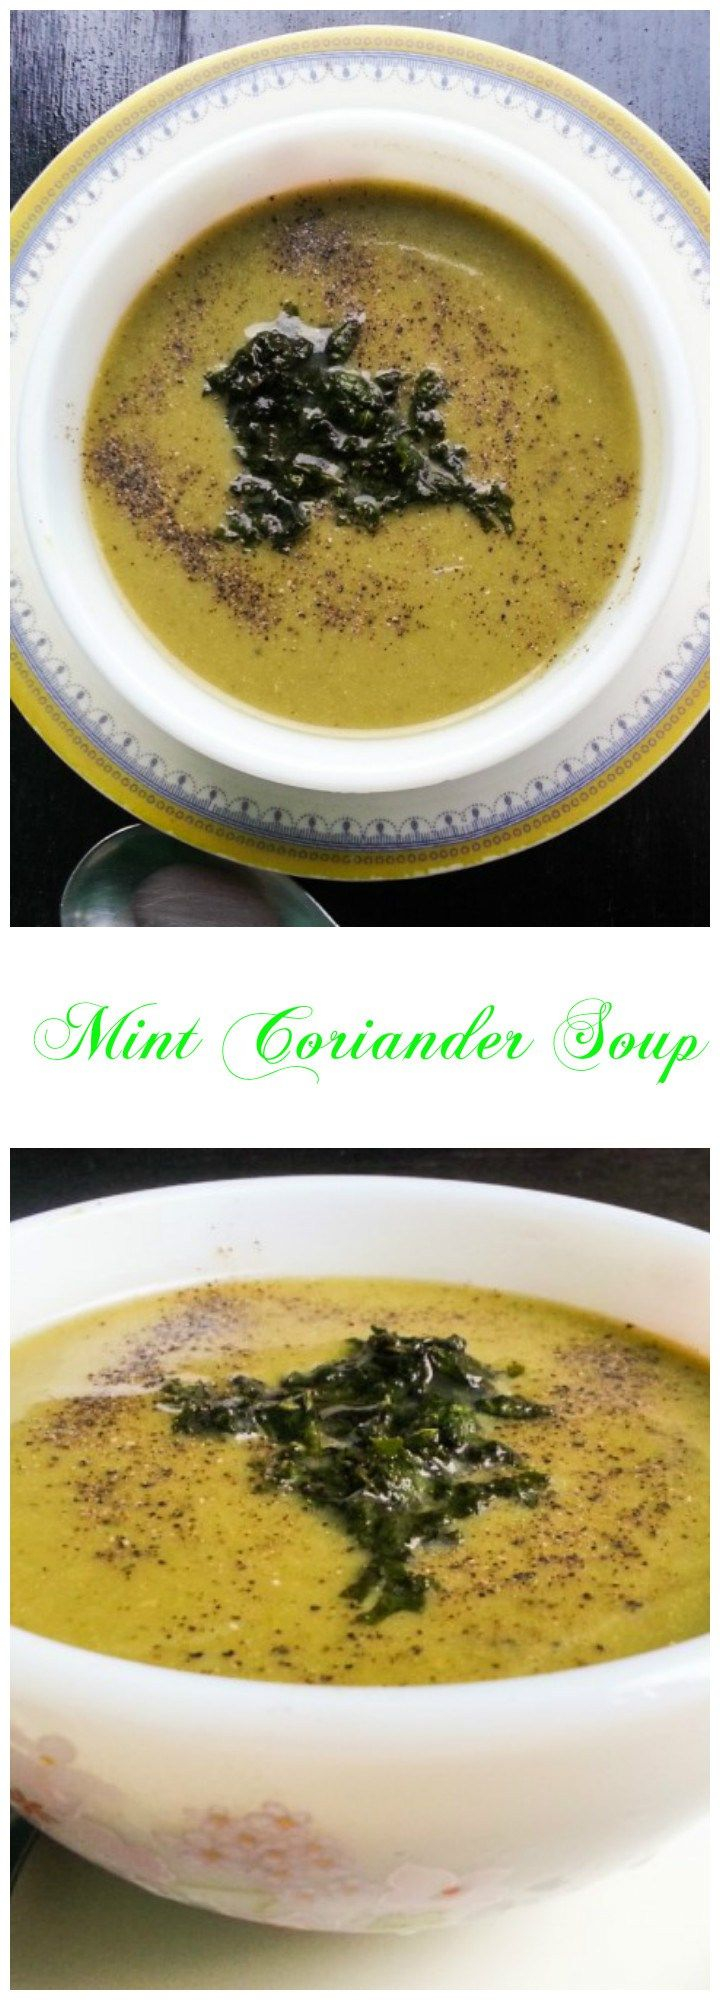 Mint Coriander Soup – A Refreshing soup with coconut milk and a dash of lemon.